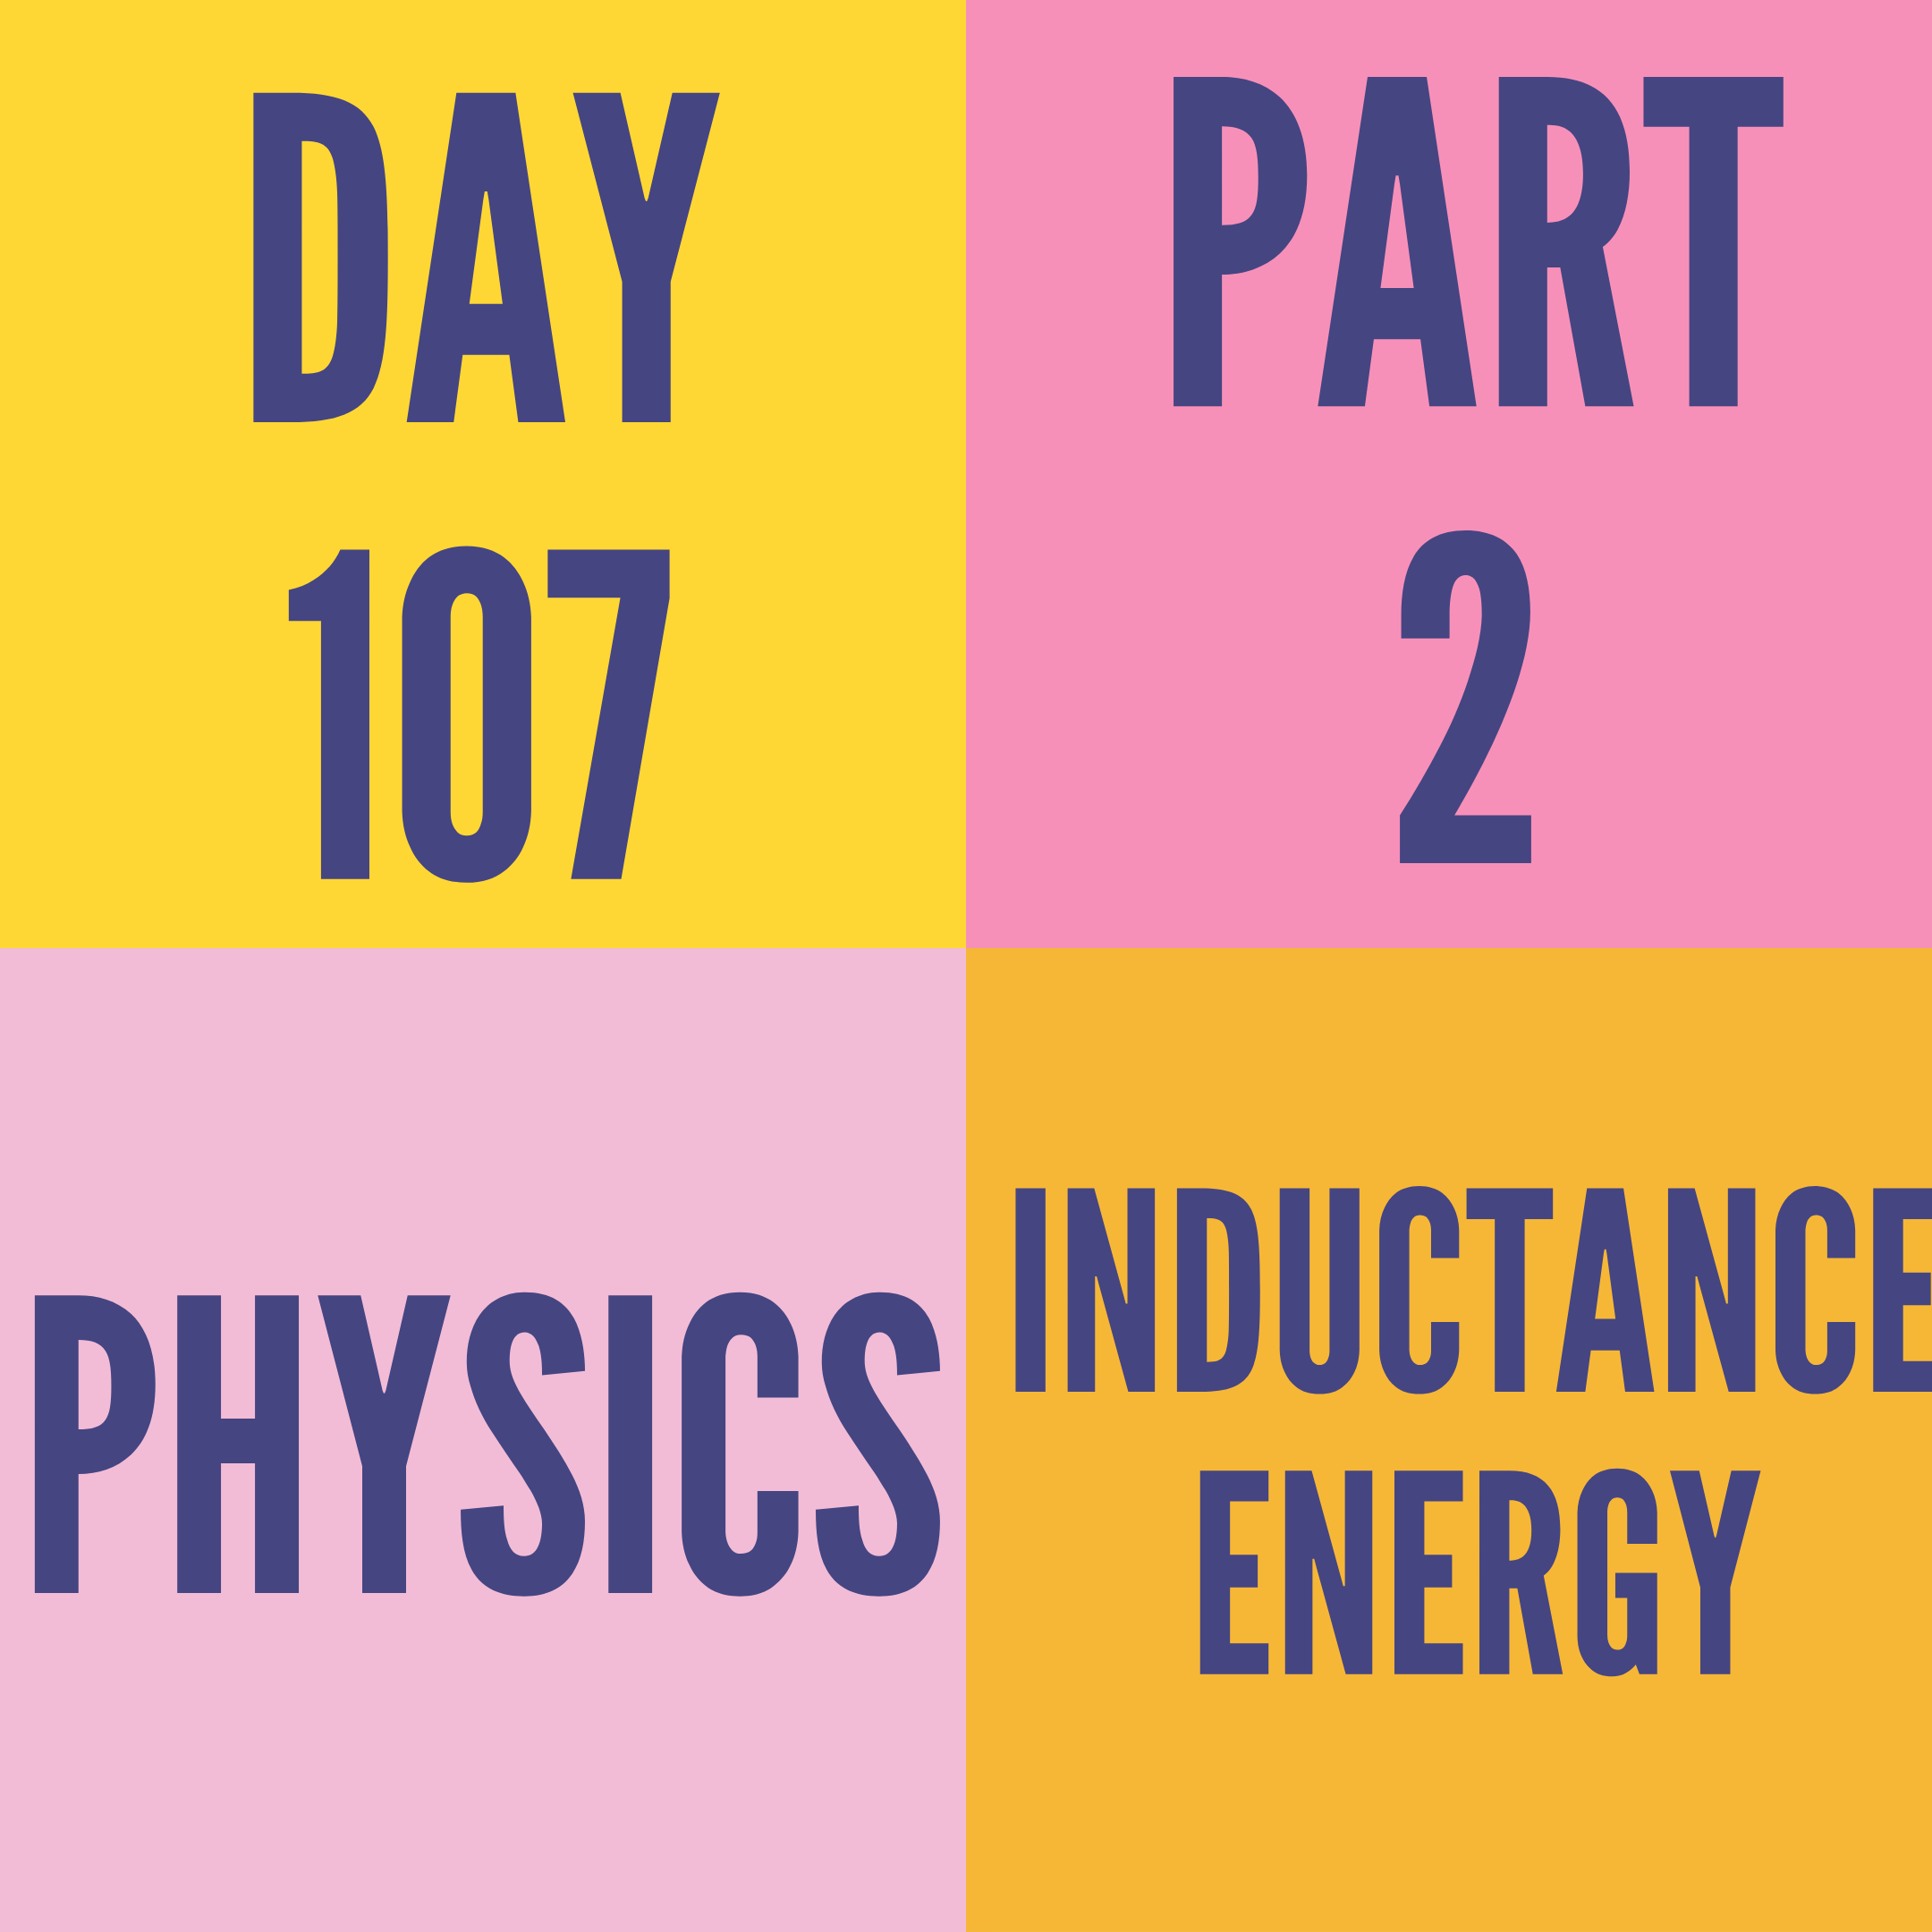 DAY-107 PART-2 INDUCTANCE ENERGY